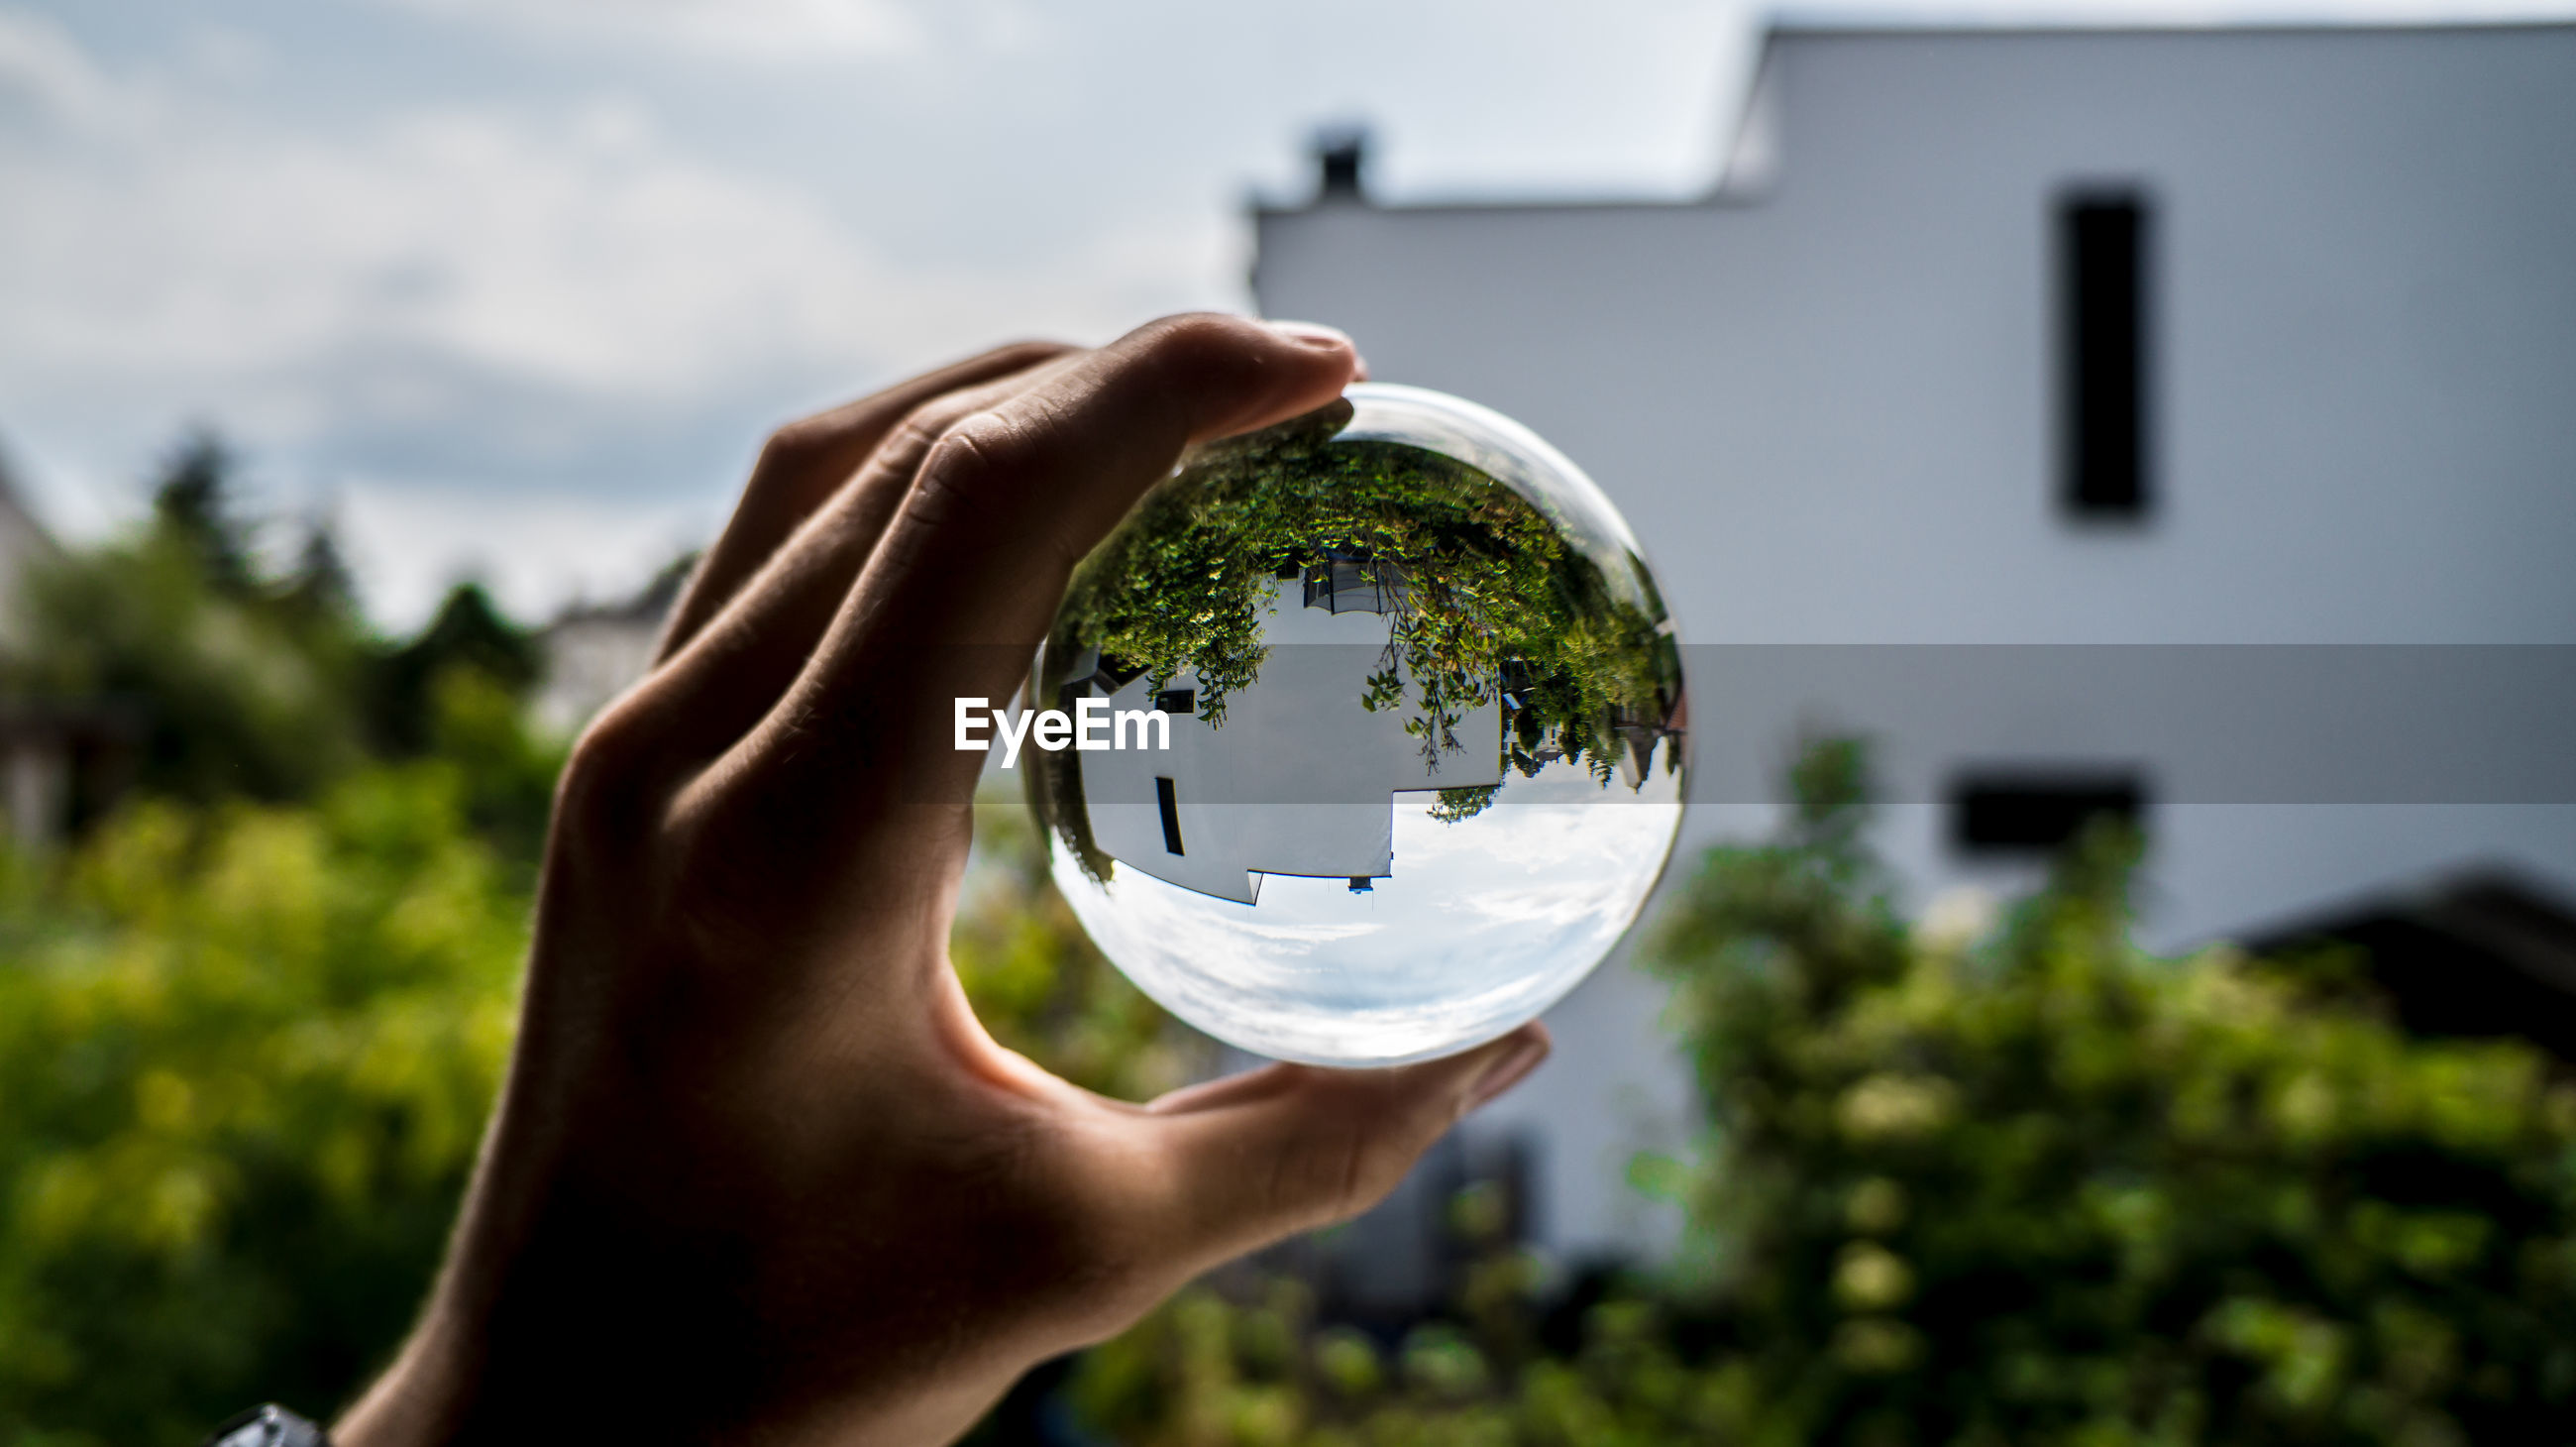 Cropped image of hand holding crystal ball against building